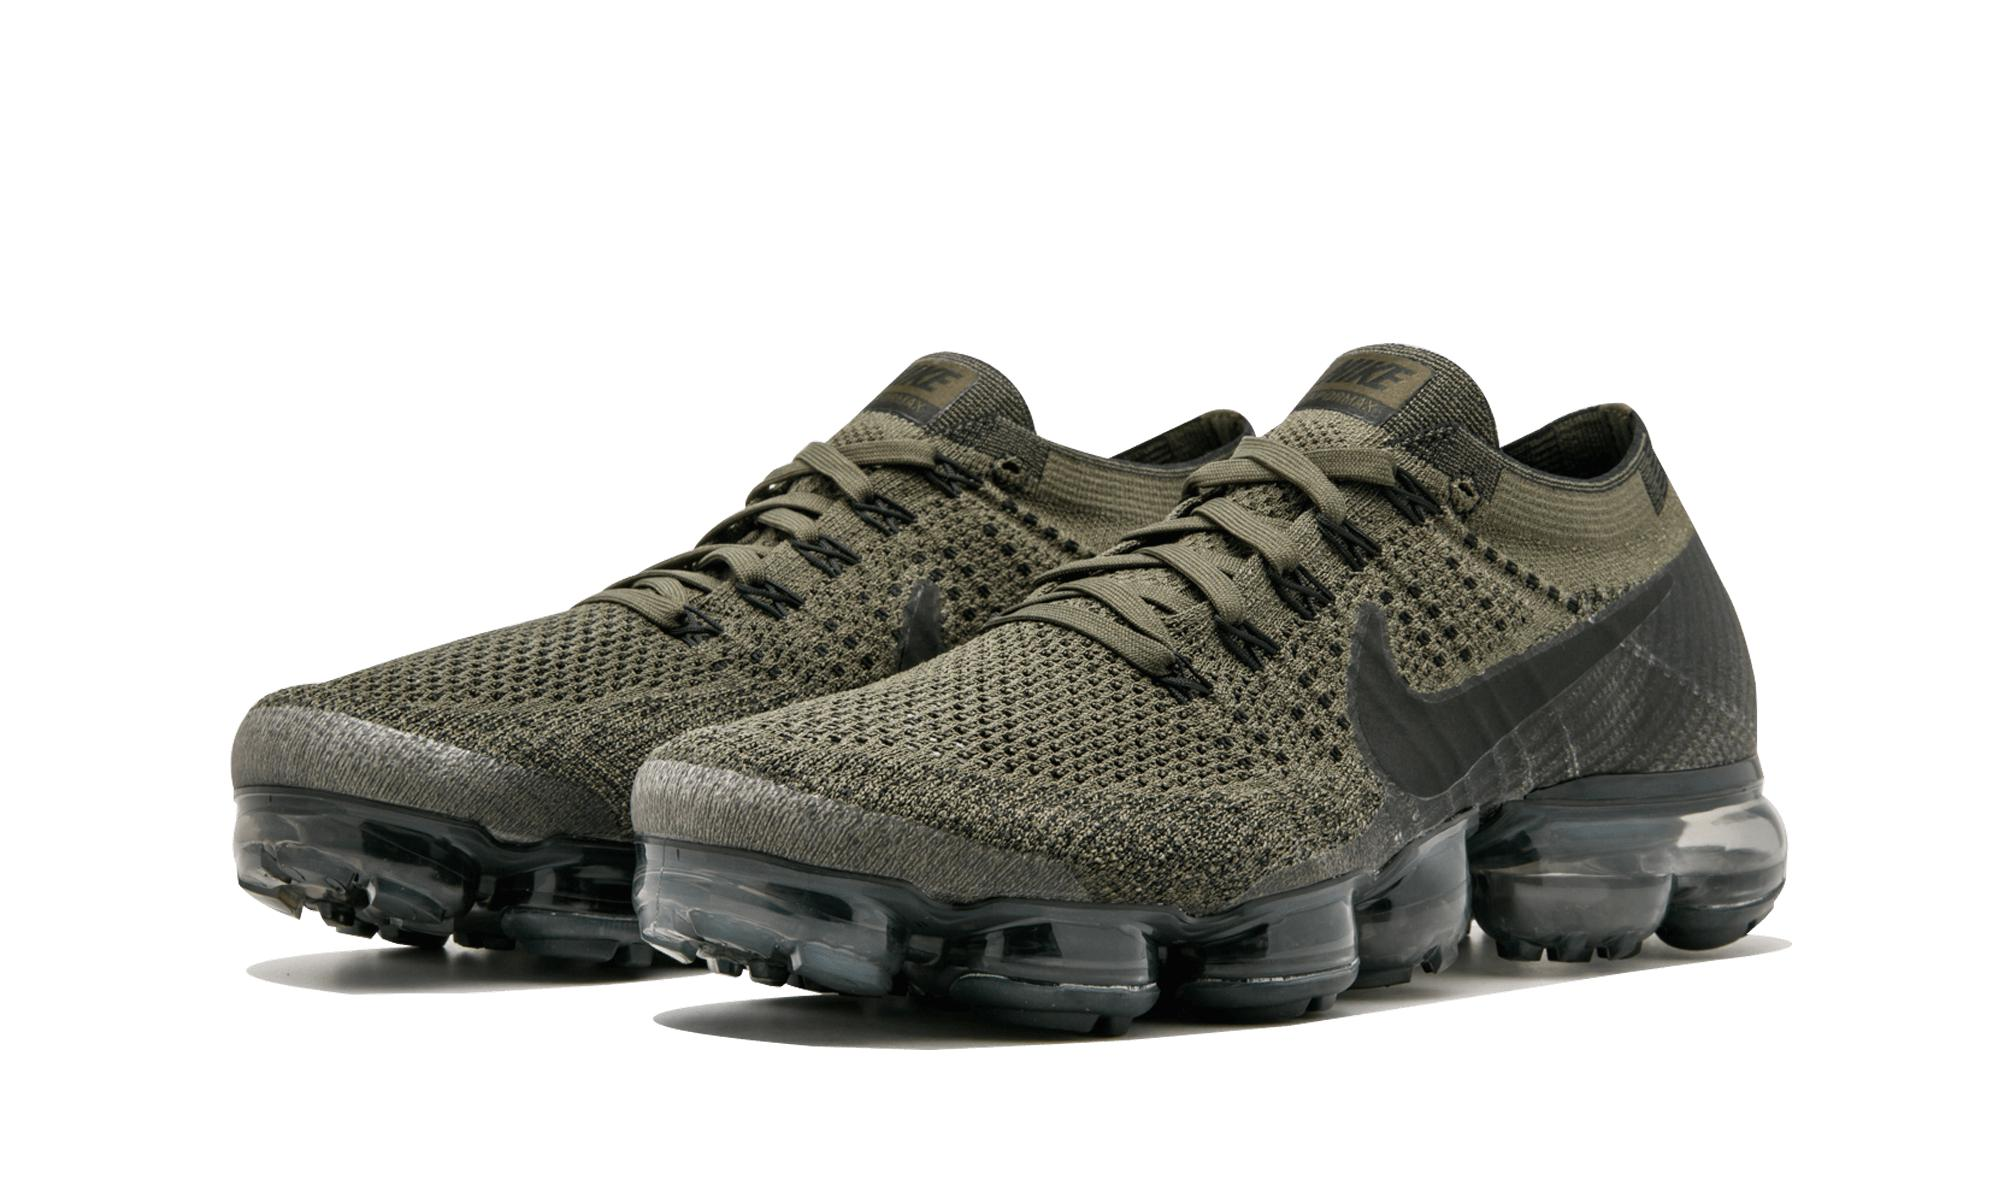 new arrival d896f 48c22 Nike - Multicolor Air Vapormax Flyknit for Men - Lyst. View fullscreen